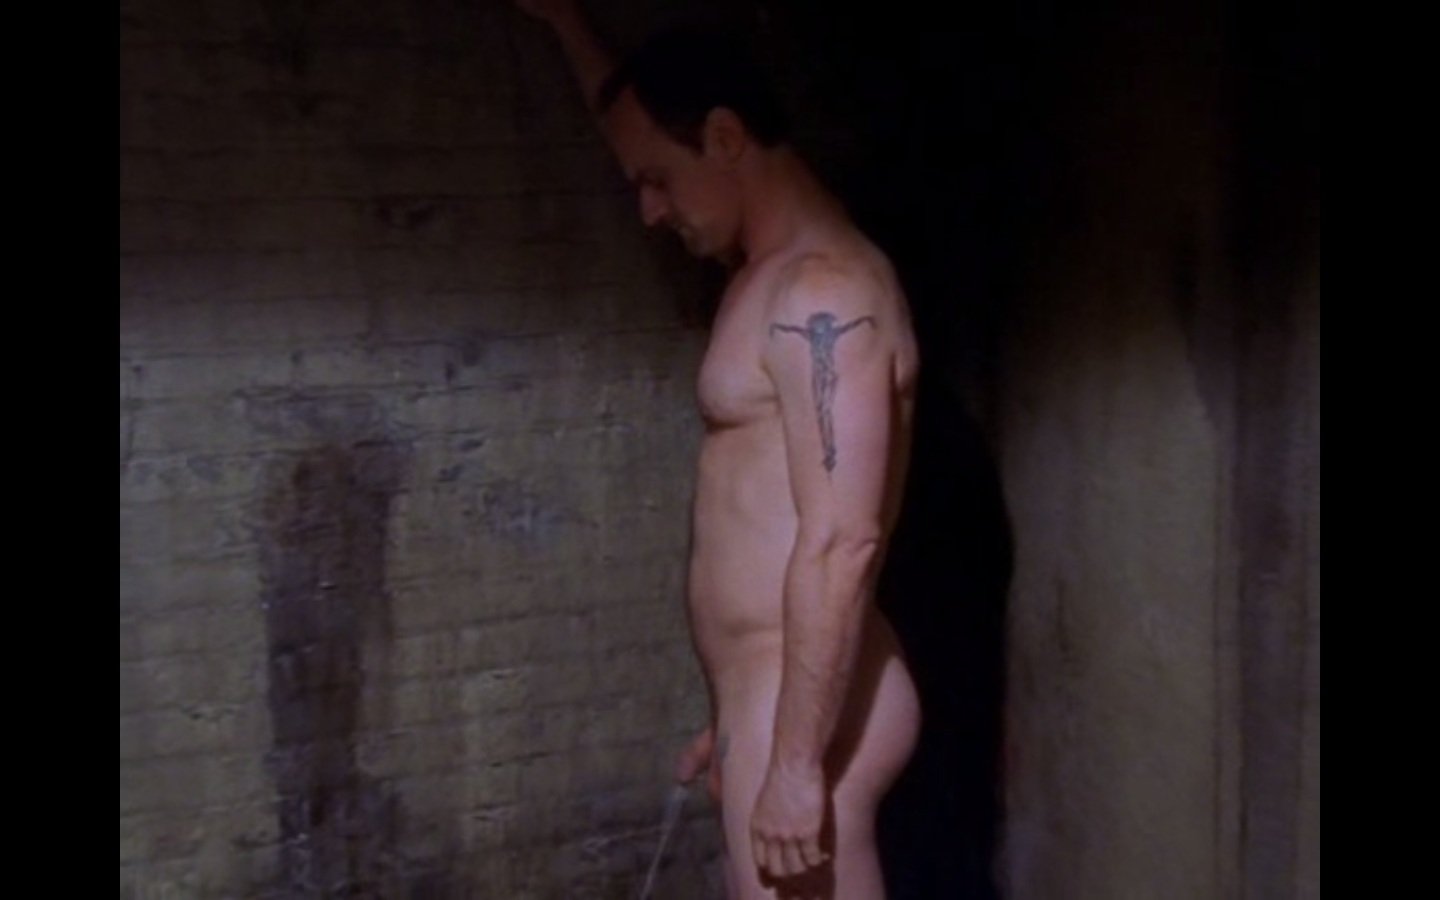 Christopher meloni naked images, first nude photo